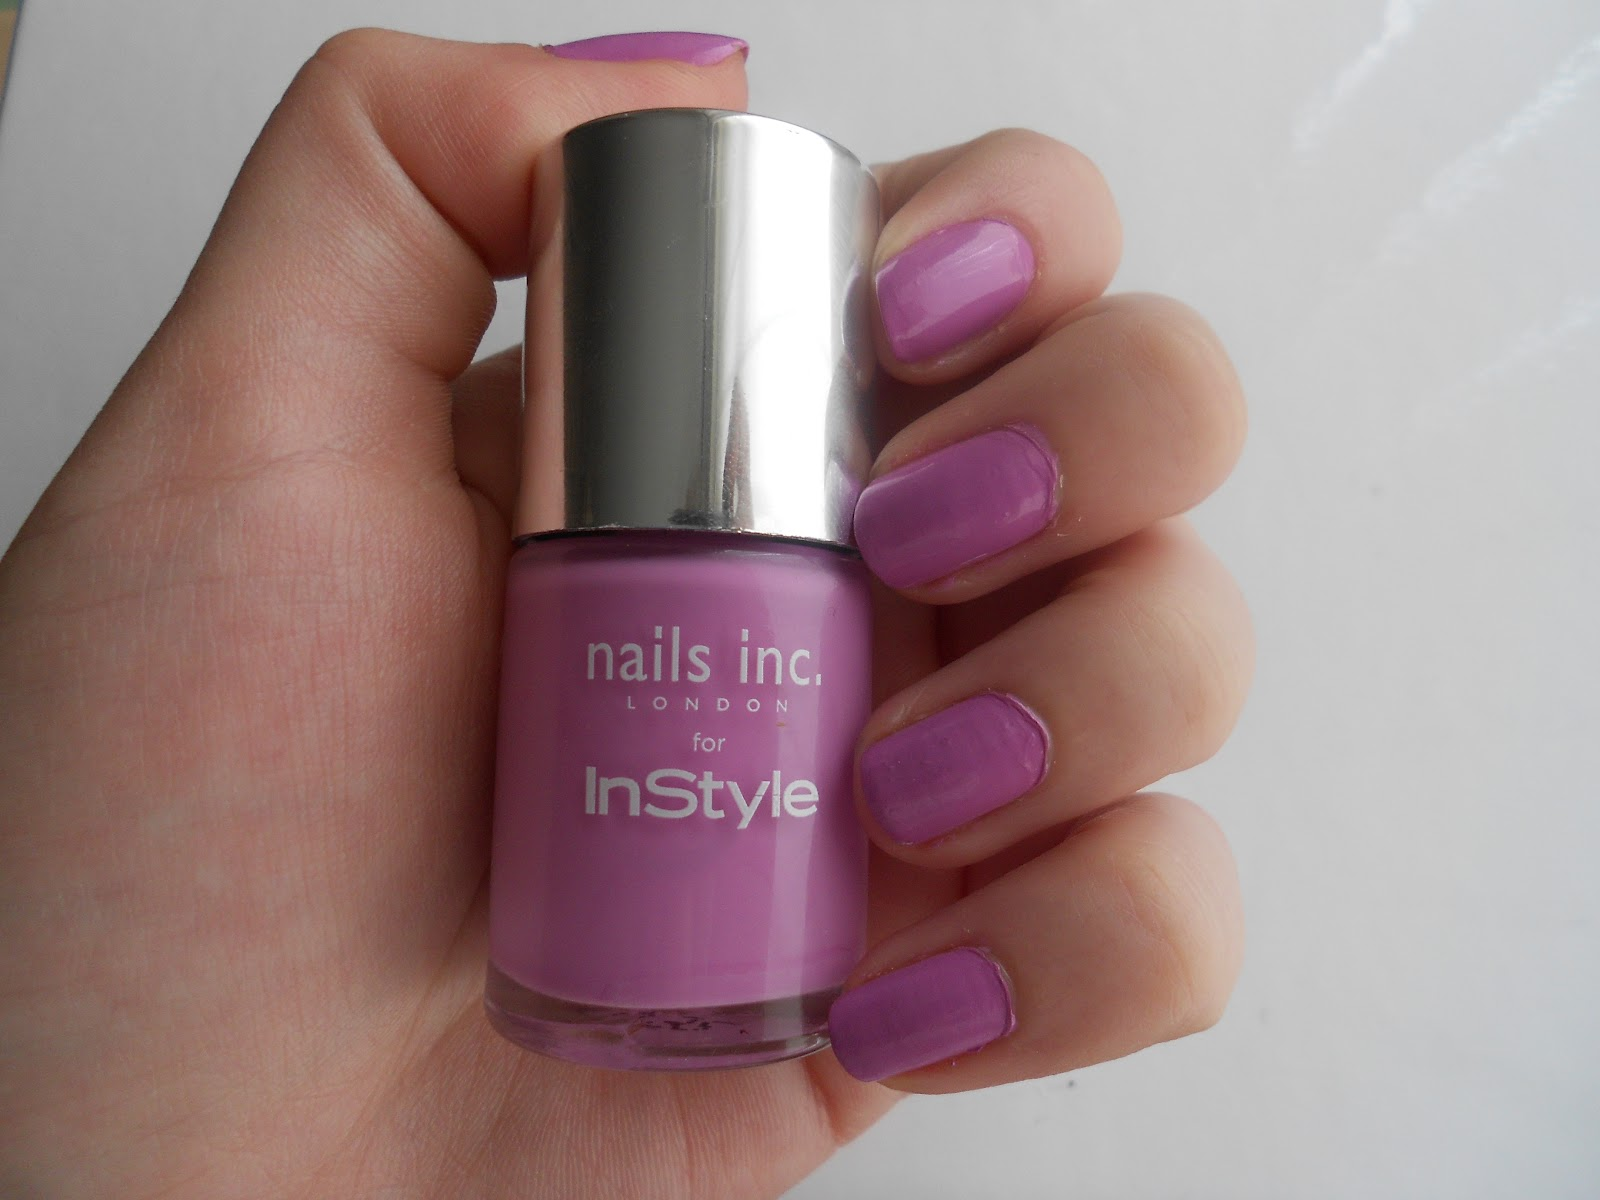 the2BEAUTYBLOGGERS: NOTD Nails Inc Instyle Power Pink Free Nail ...